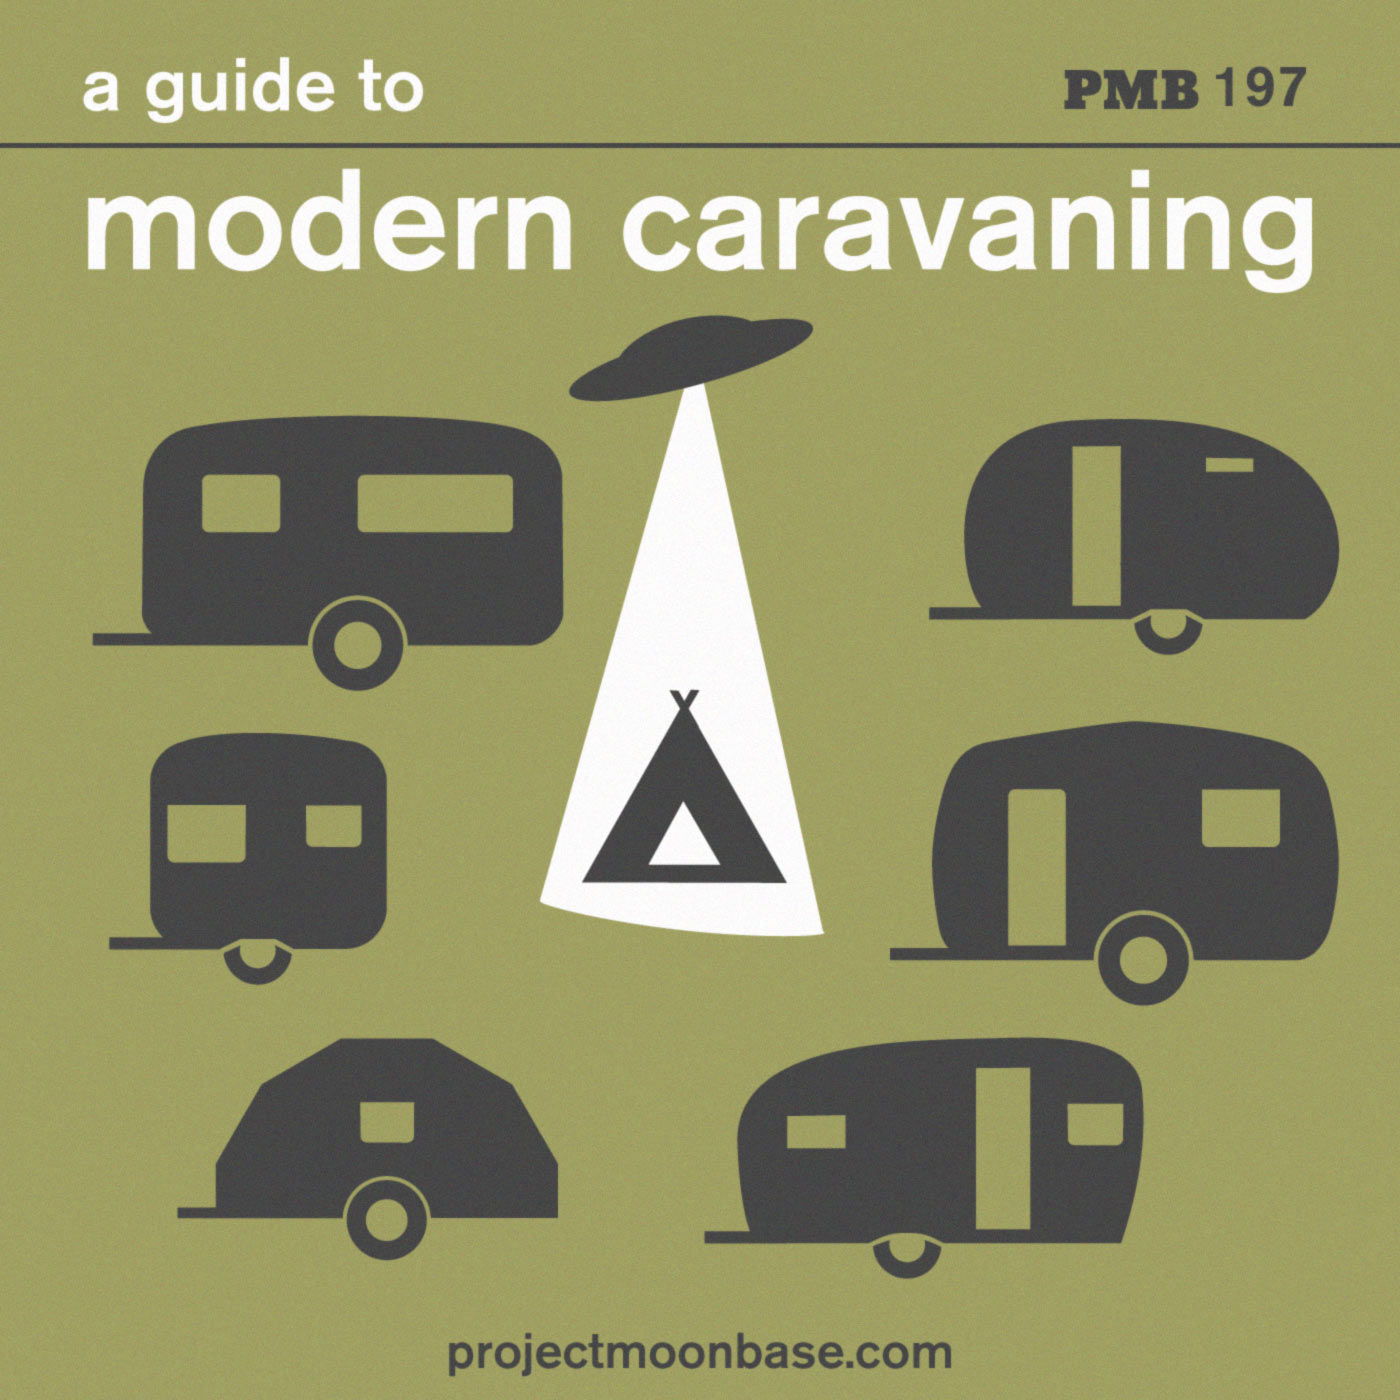 PMB197: A Guide To Modern Caravanning